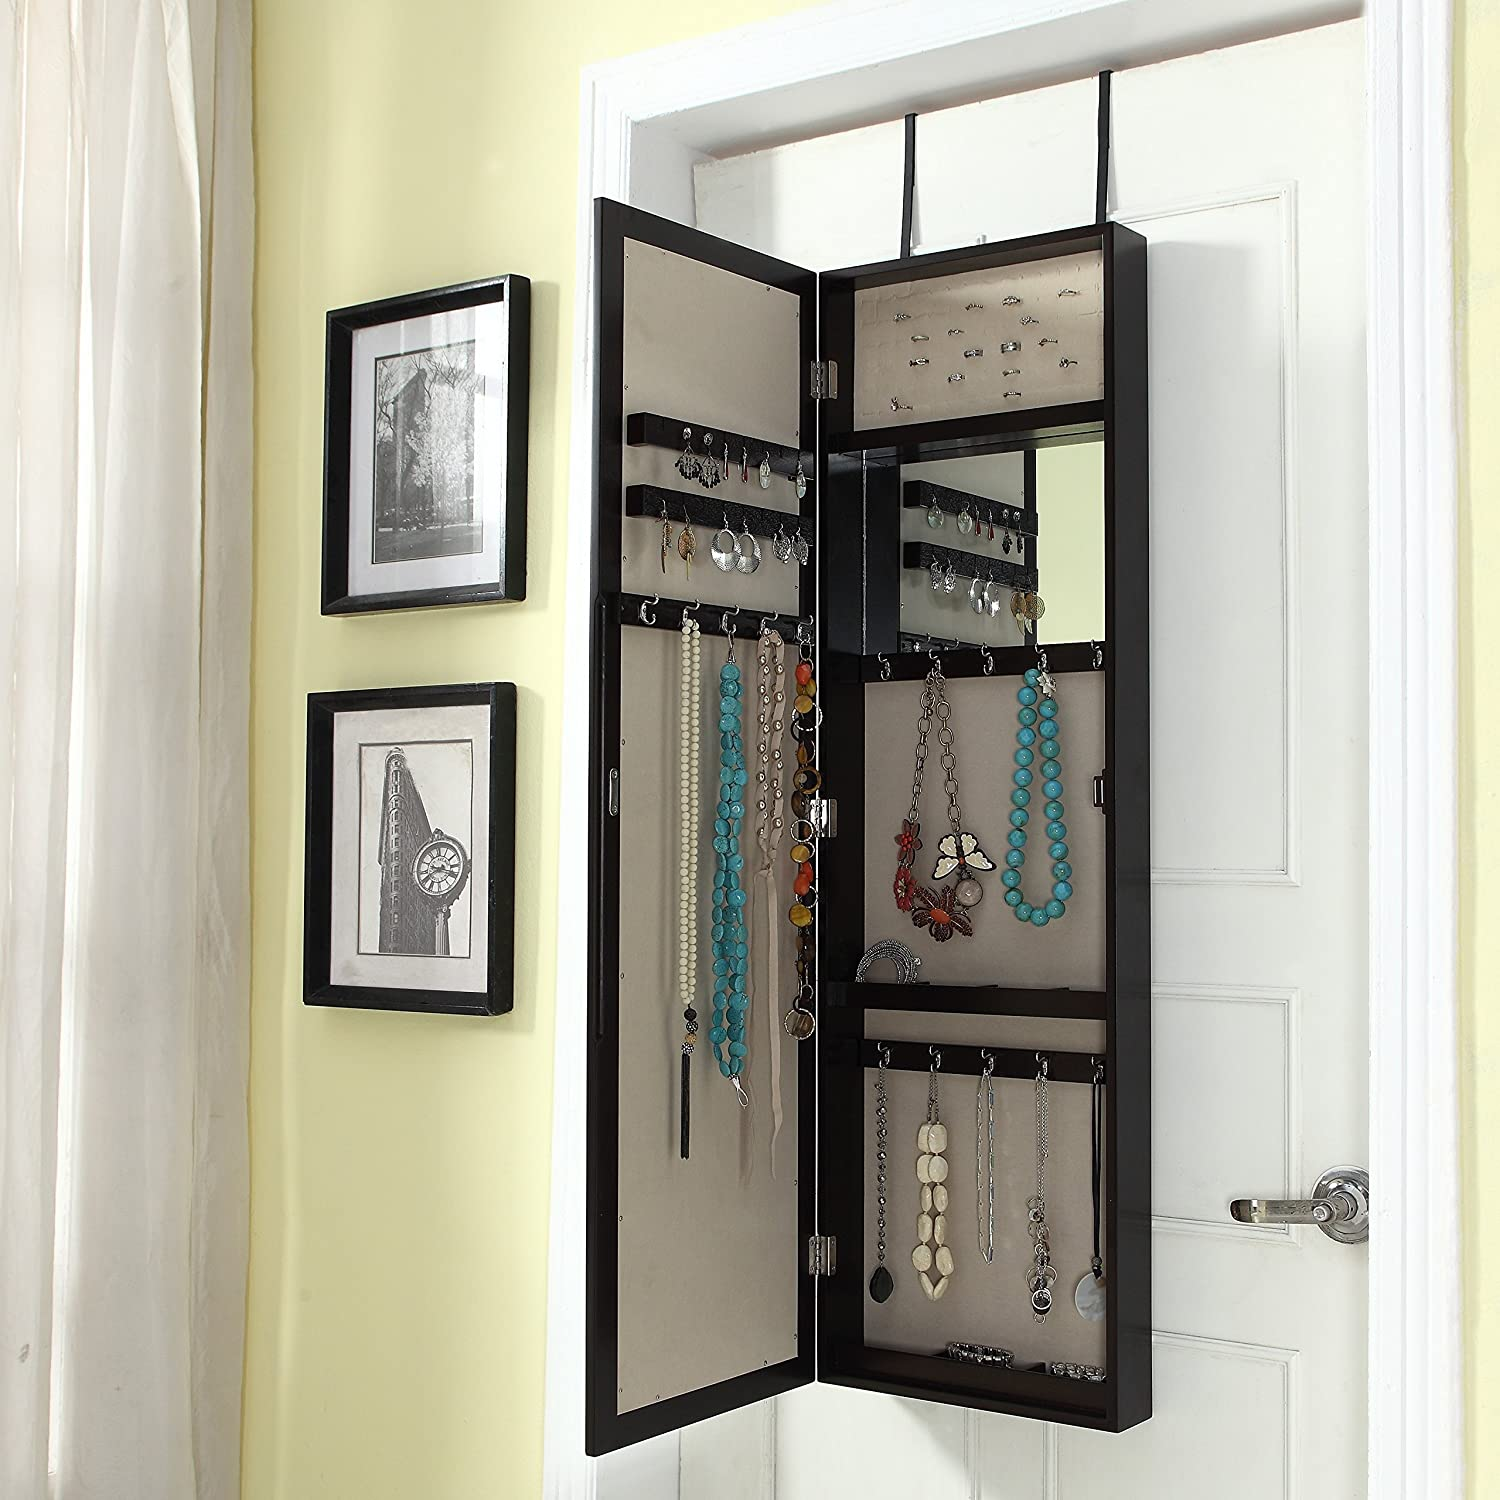 Charmant Modern Over The Door Jewelry Armoire With Mirror Jewelry Box Jewelry  Cabinet Jewelry Holder Necklace Holder Storage Mirror Wall Mounting Option  Trendy, ...